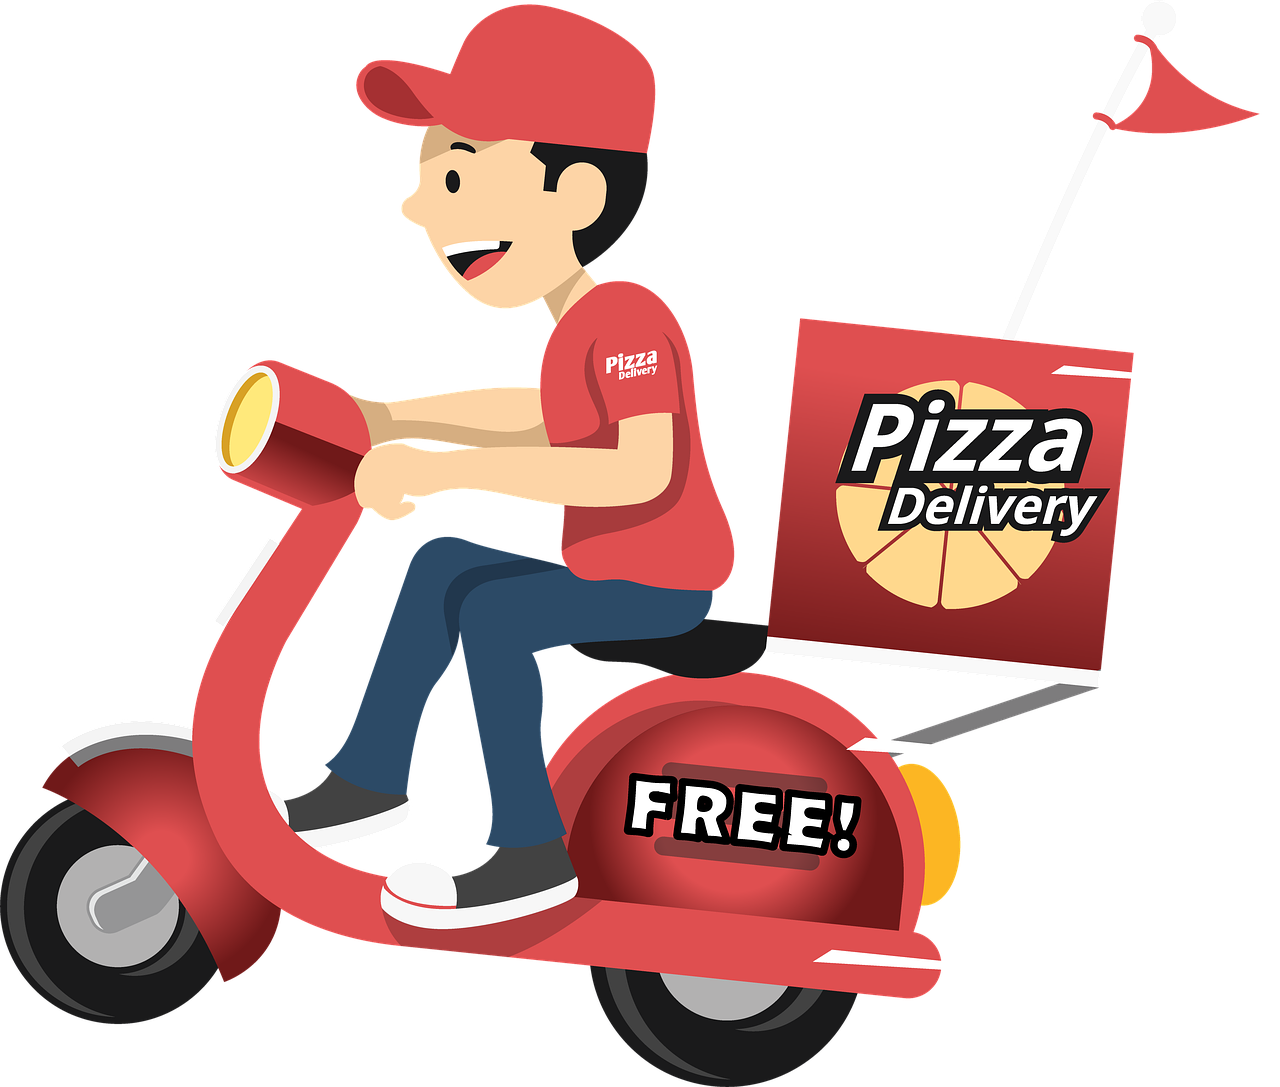 pizza, delivery, food, Free illustrations,free pictures, free photos, free images, royalty free, free illustrations, public domain